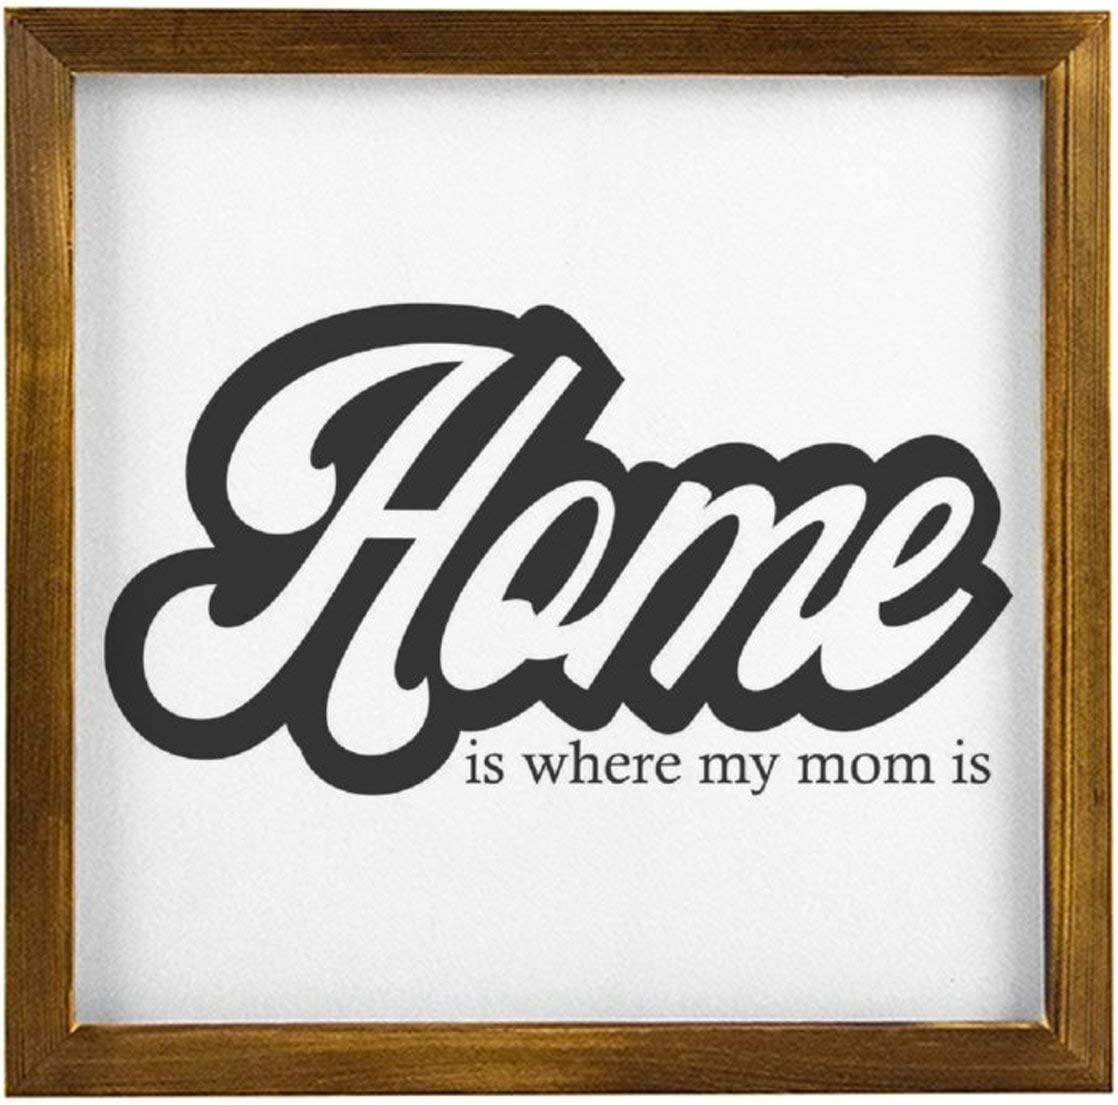 BYRON HOYLE Framed Wood Sign Home is Where My Mom is Home Mom Funny Cute Designs Quote Wall Hanger Wooden Sign Wall Art Home Decor Sign Bedroom Living Room Sign Best Present 3030cm